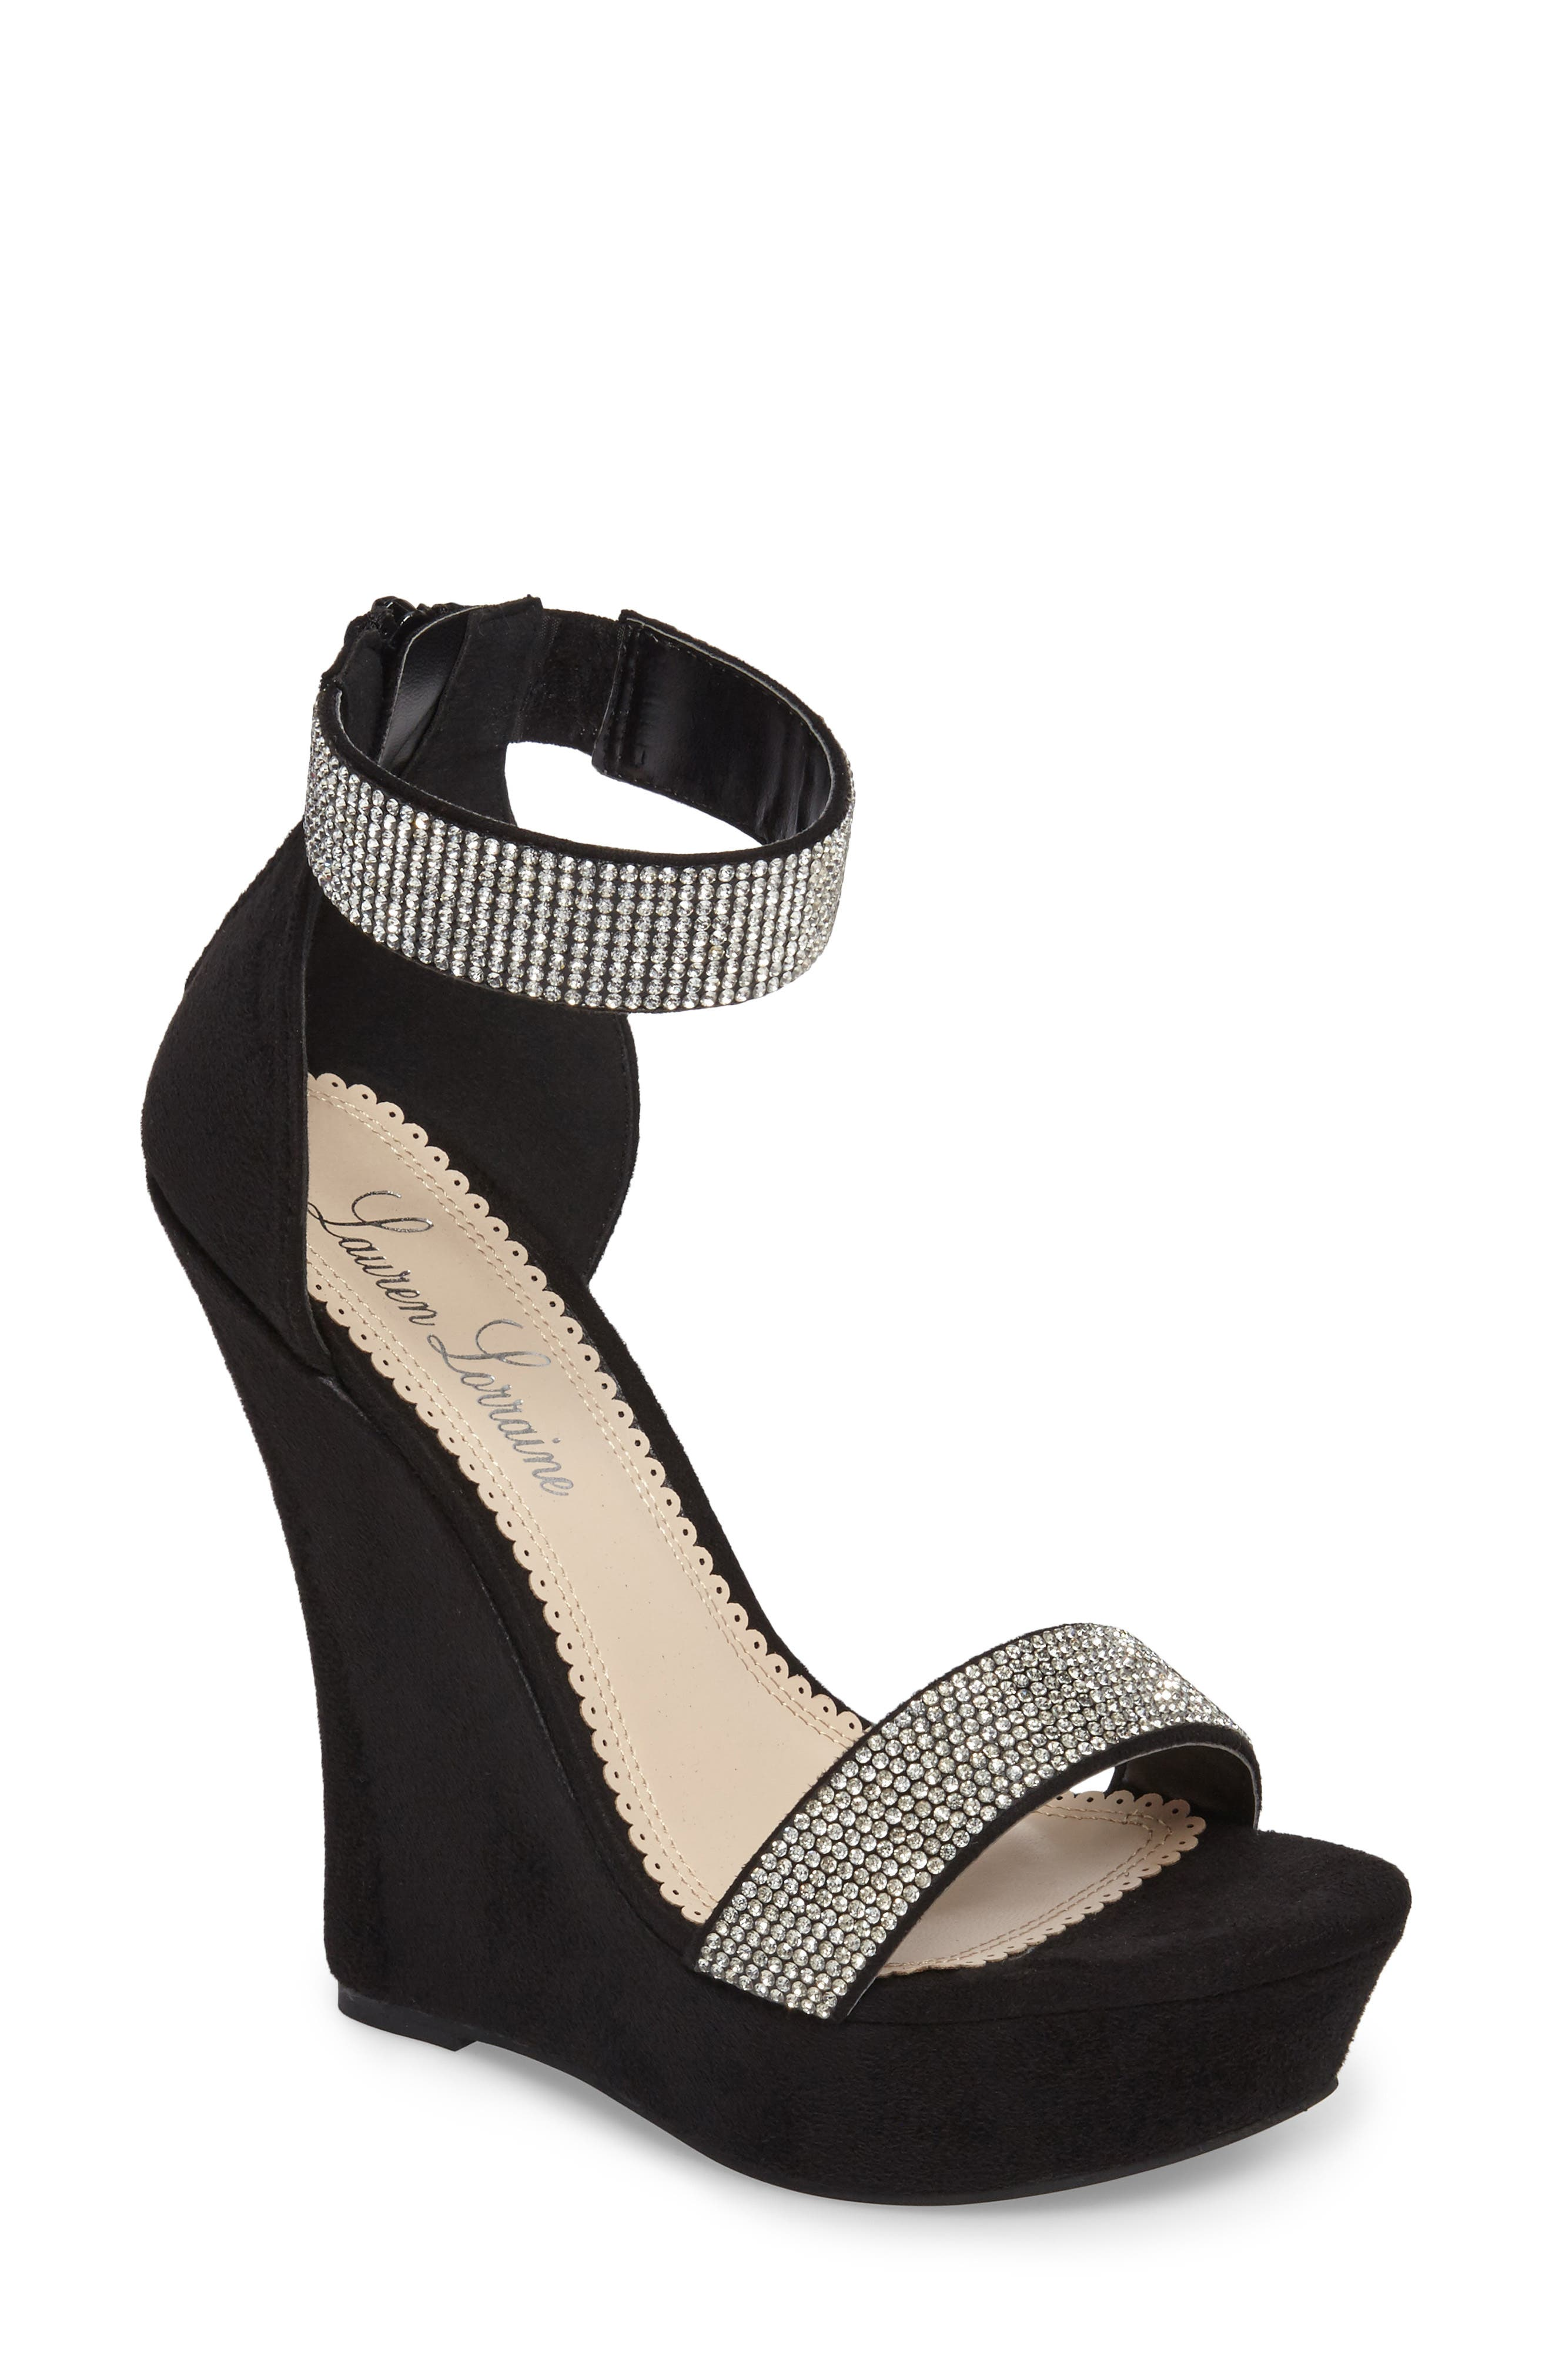 Free shipping and returns returns and on Lauren Lorraine 39Nonie39 Crystal Wedge 0fbaa1